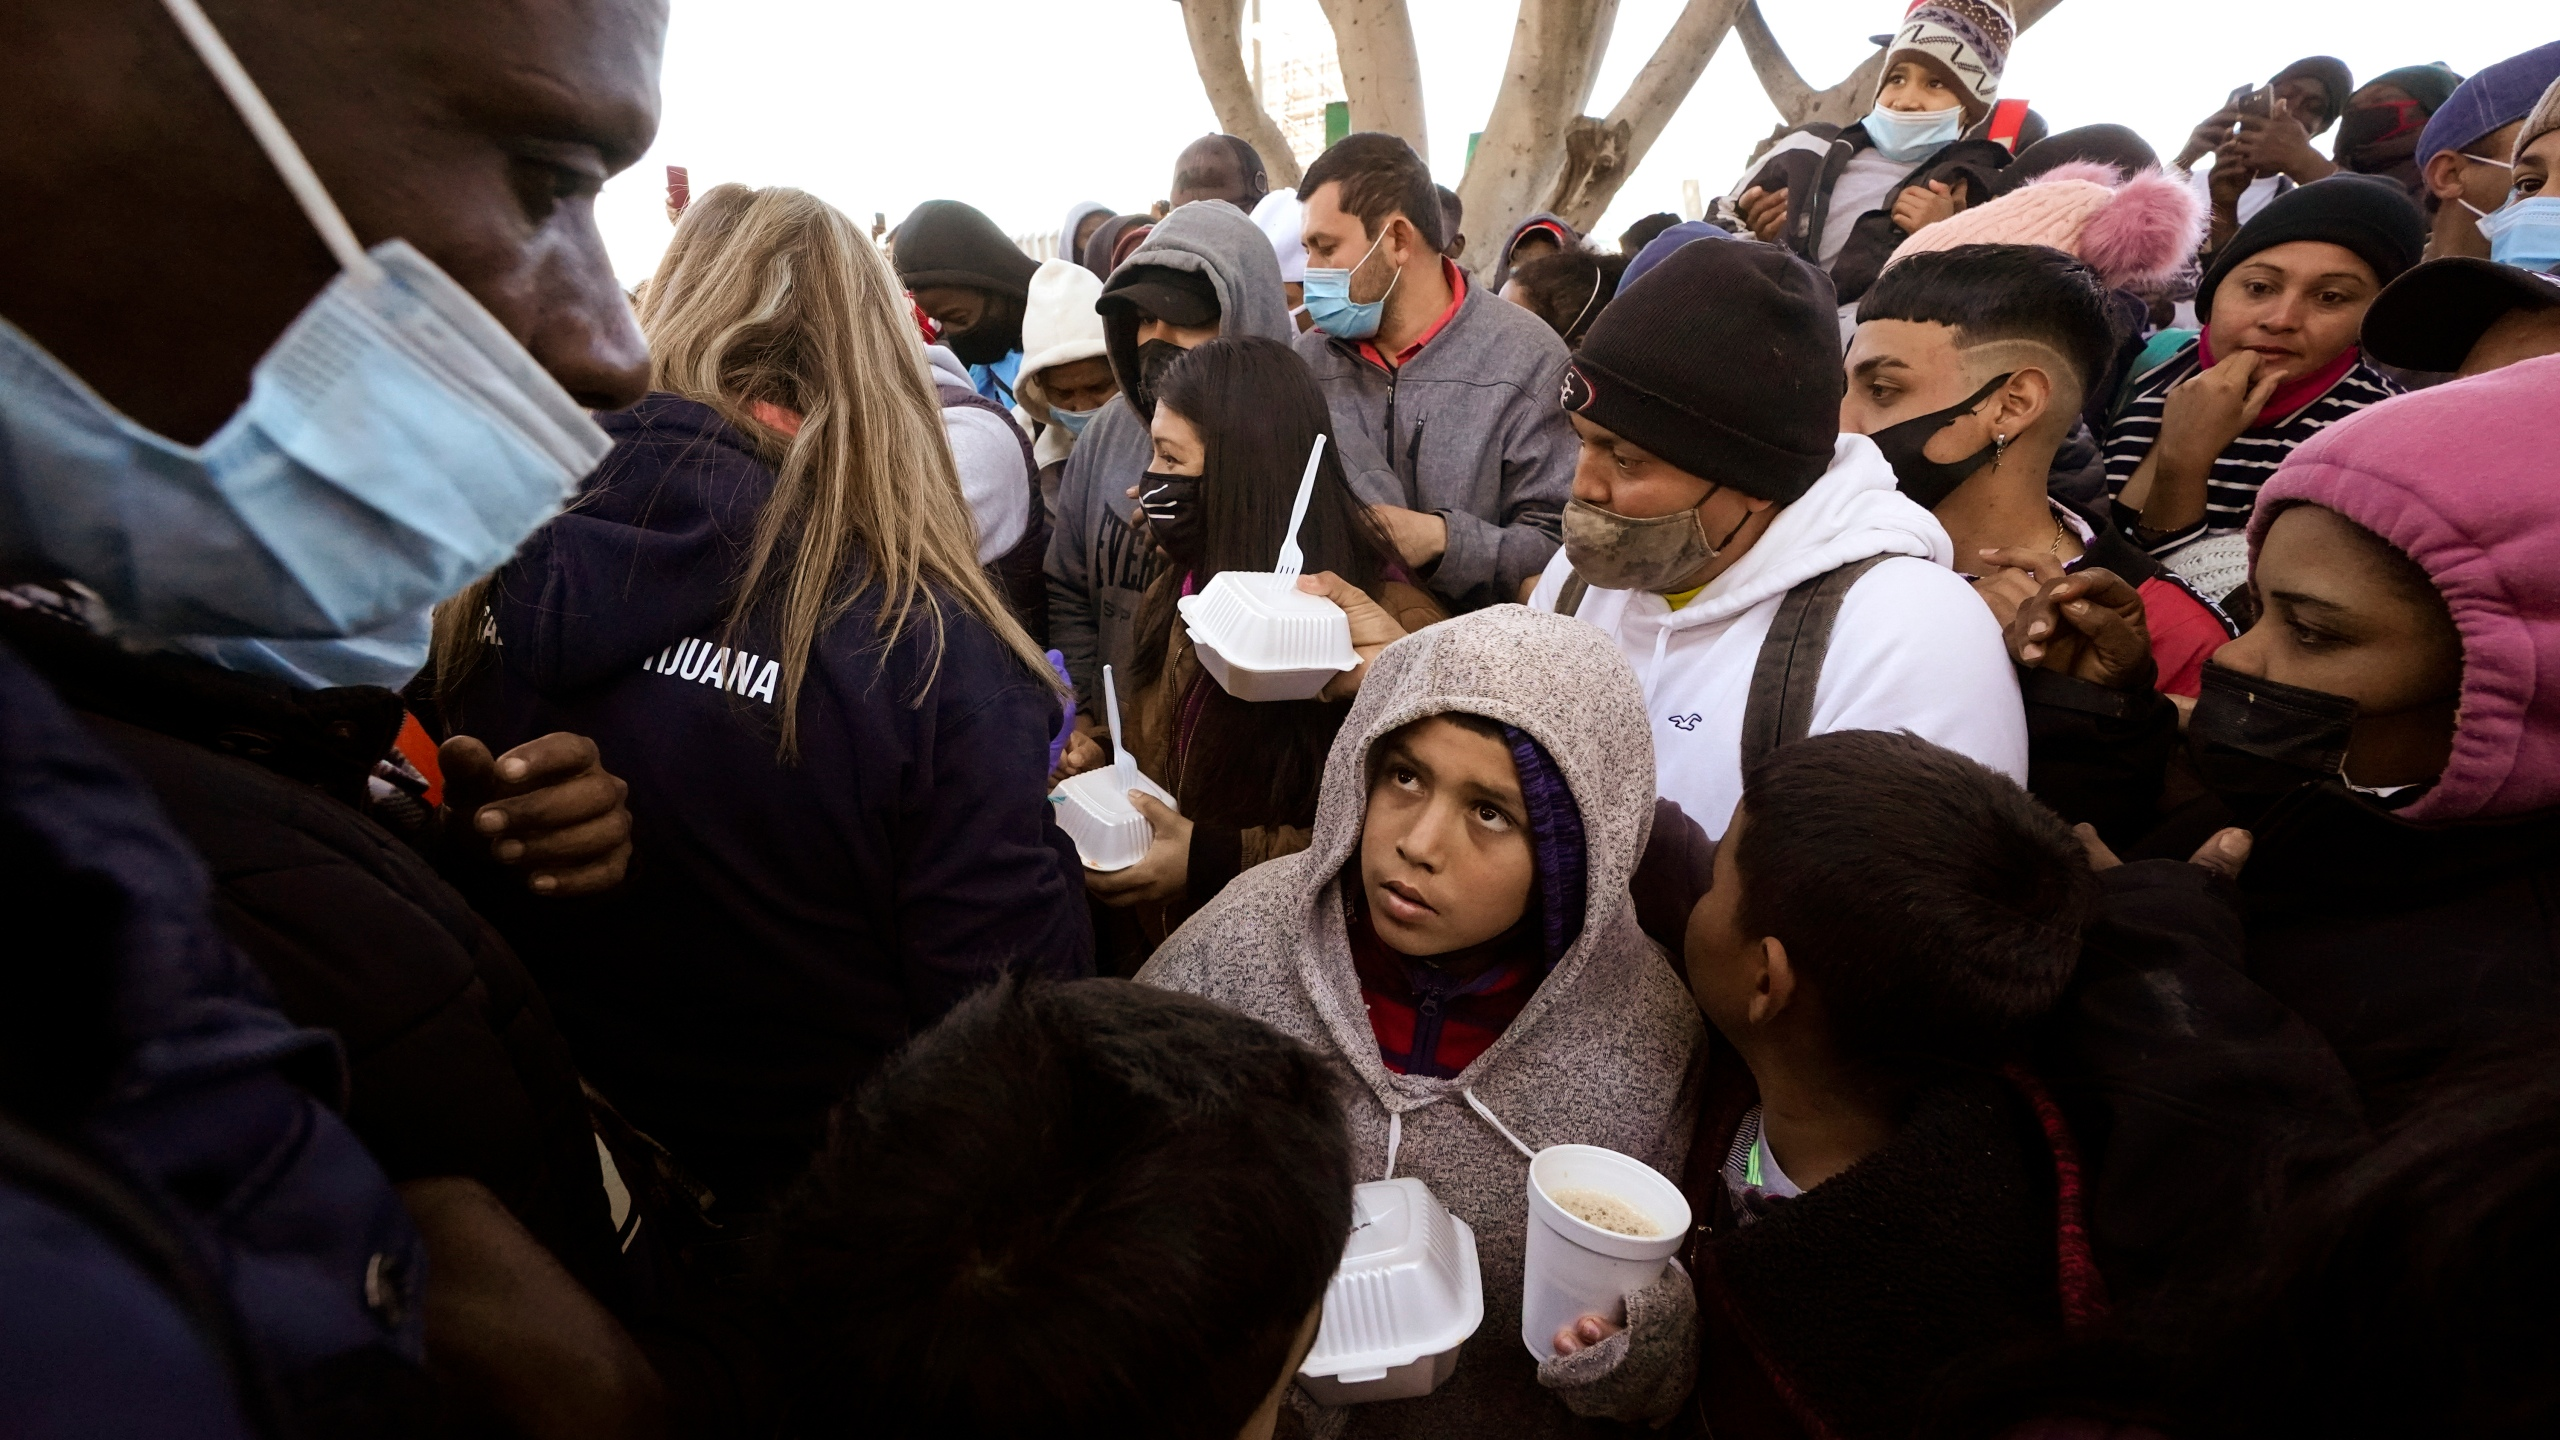 """FILE — In this Feb. 19, 2021 file photo asylum seekers receive food as they wait for news of policy changes at the border, in Tijuana, Mexico. The Biden administration outlined a plan to reinstate a border policy that made asylum-seekers wait in Mexico for hearings in U.S. immigration court. Details were disclosed in a court filing after a federal judge in Texas ordered that the policy by resumed """"in good faith,"""" having started under President Donald Trump and sending about 70,000 people back to Mexico until Biden abruptly ended because he felt it was inhumane. (AP Photo/Gregory Bull, File)"""